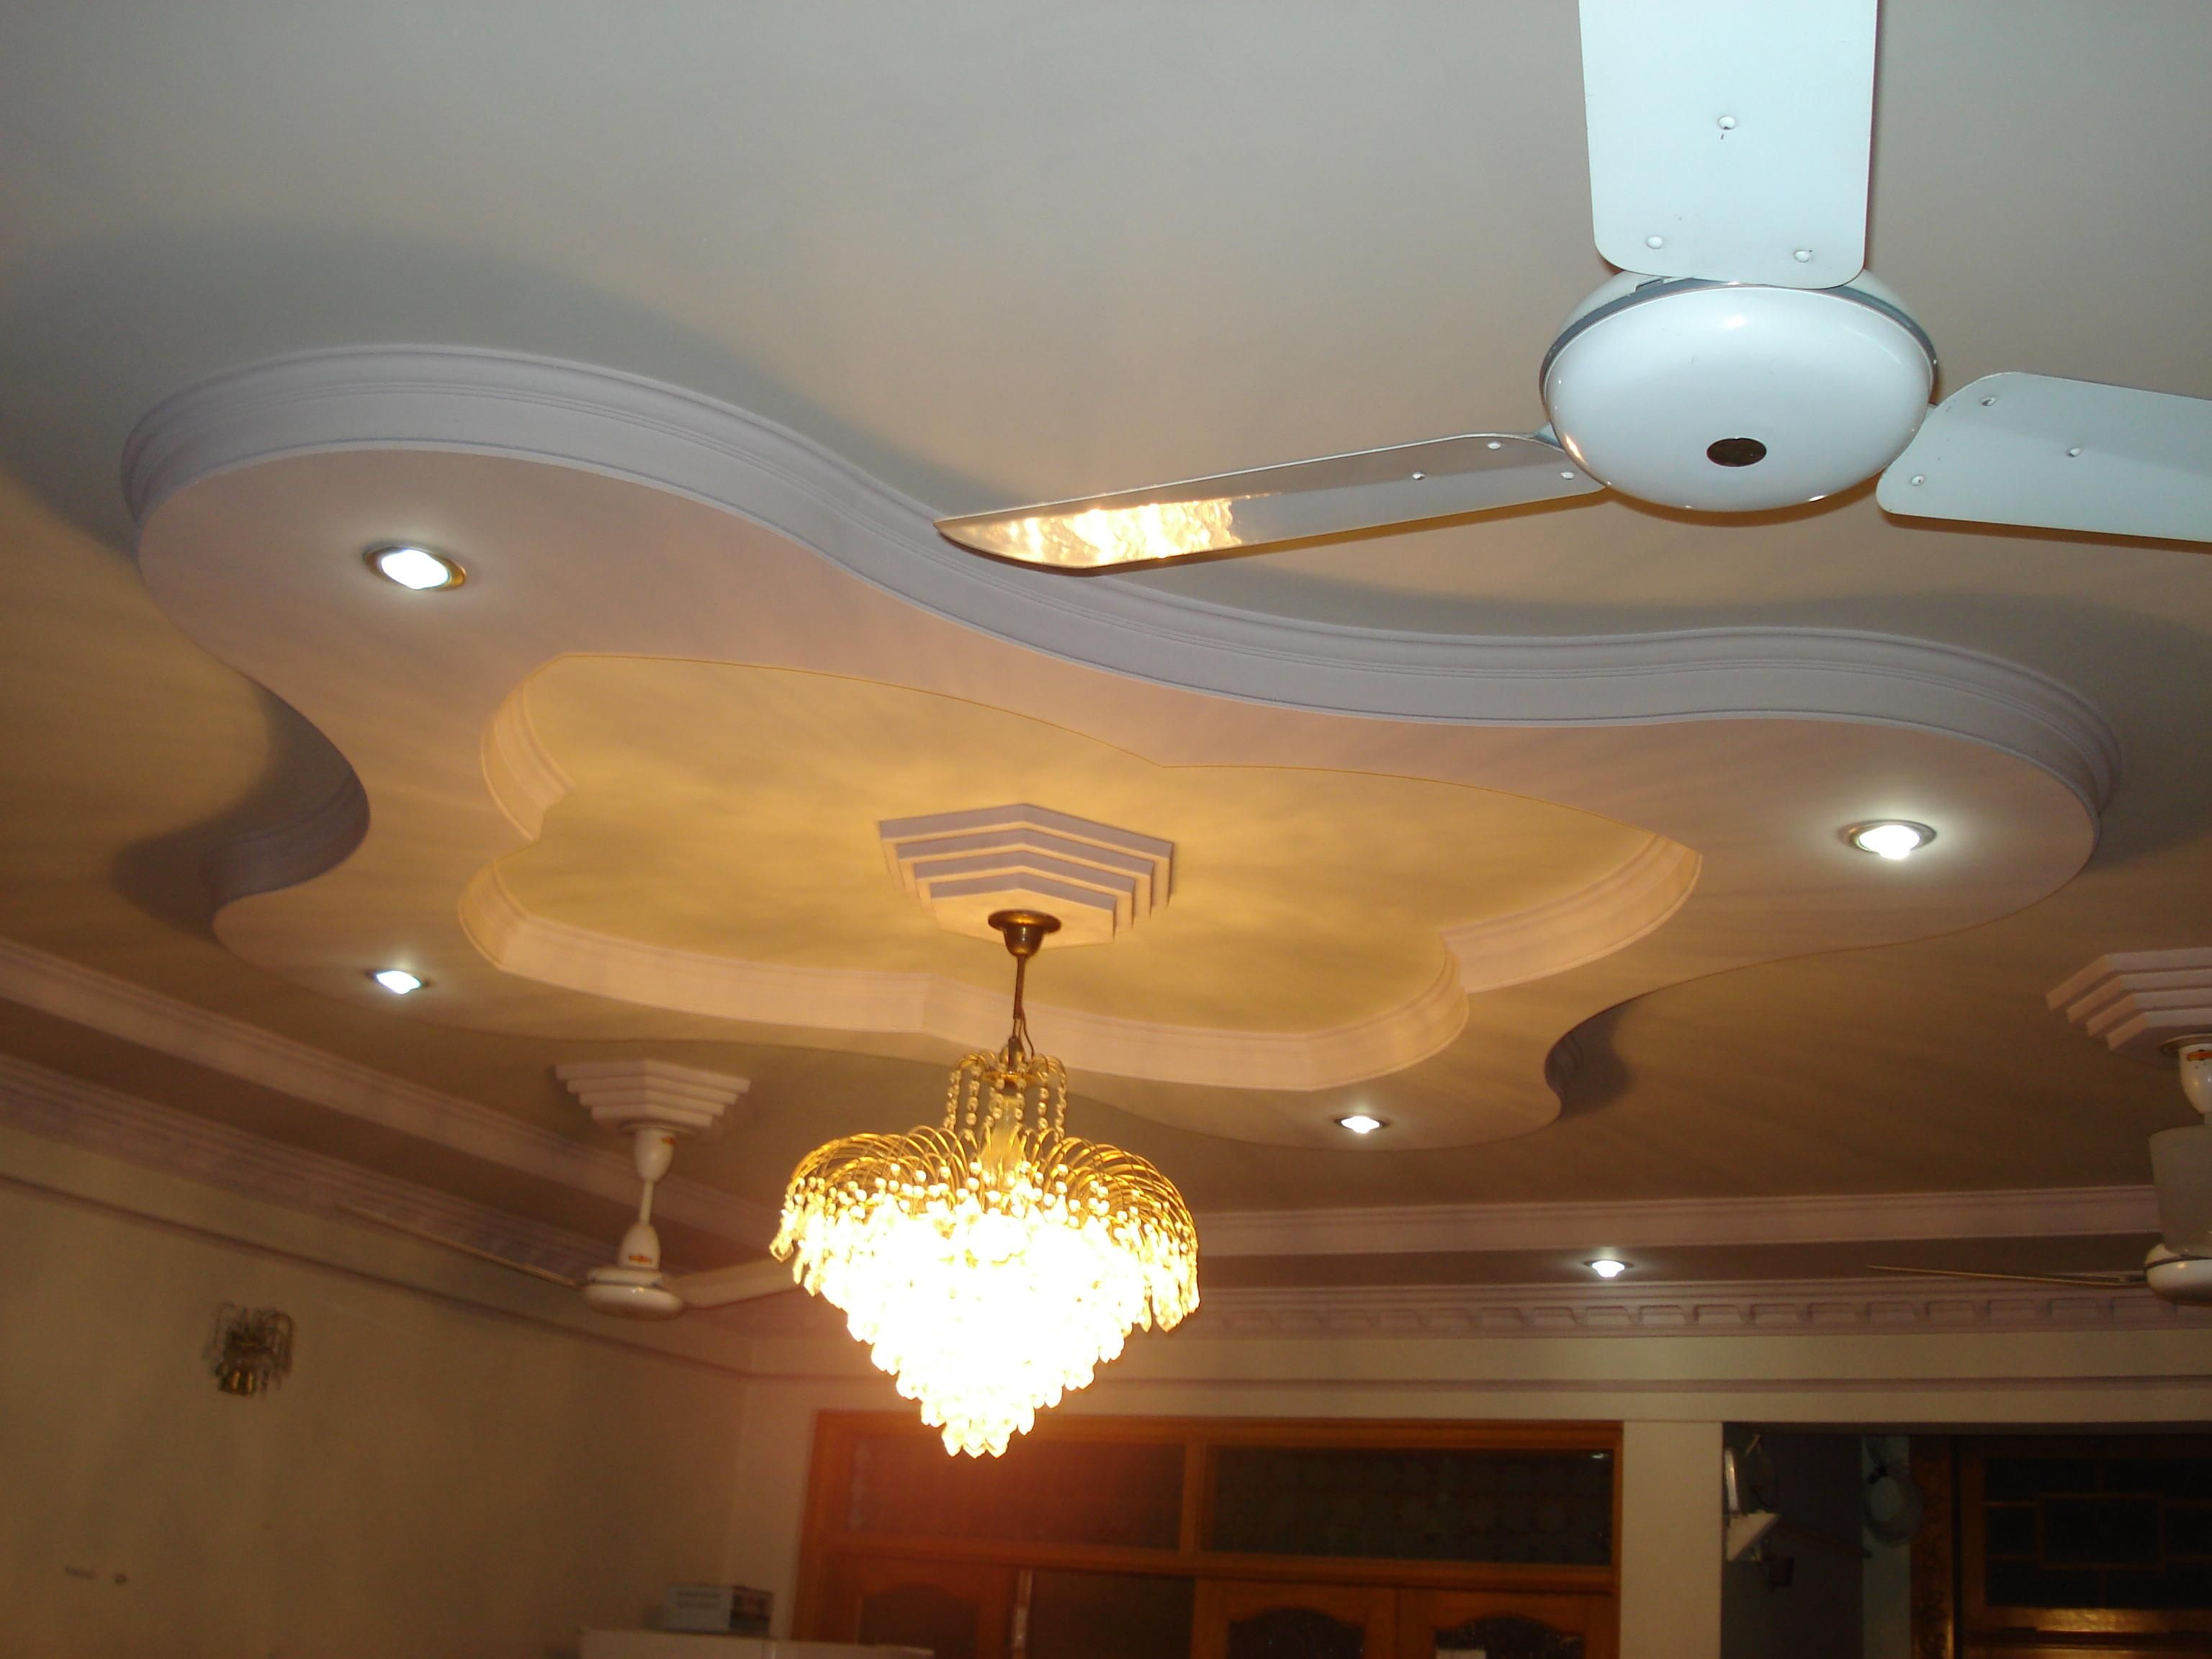 Modern False Bedroom Designs Ceiling Pop With White Fan On Plafond